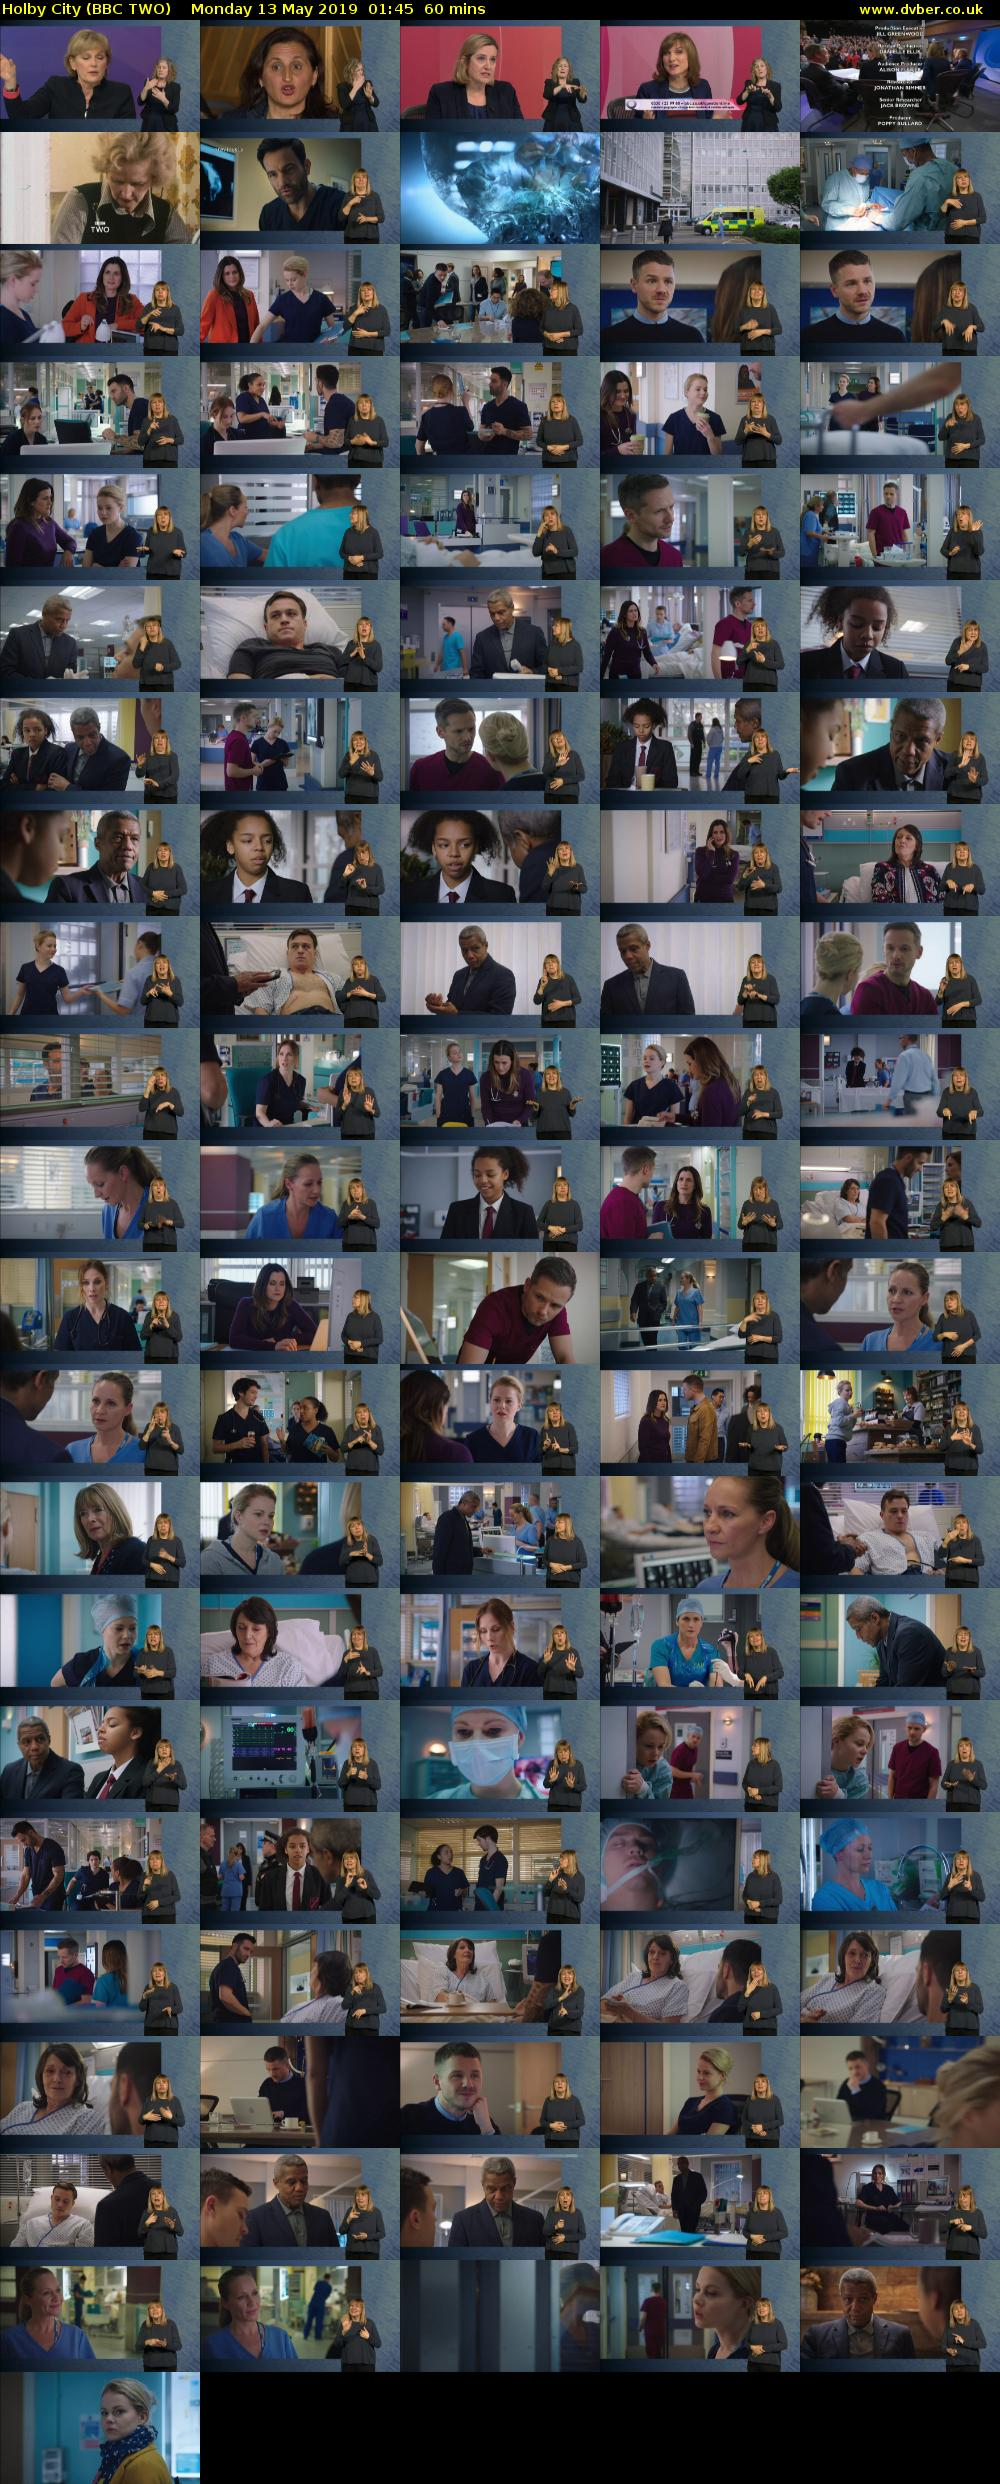 Holby City (BBC TWO) Monday 13 May 2019 01:45 - 02:45